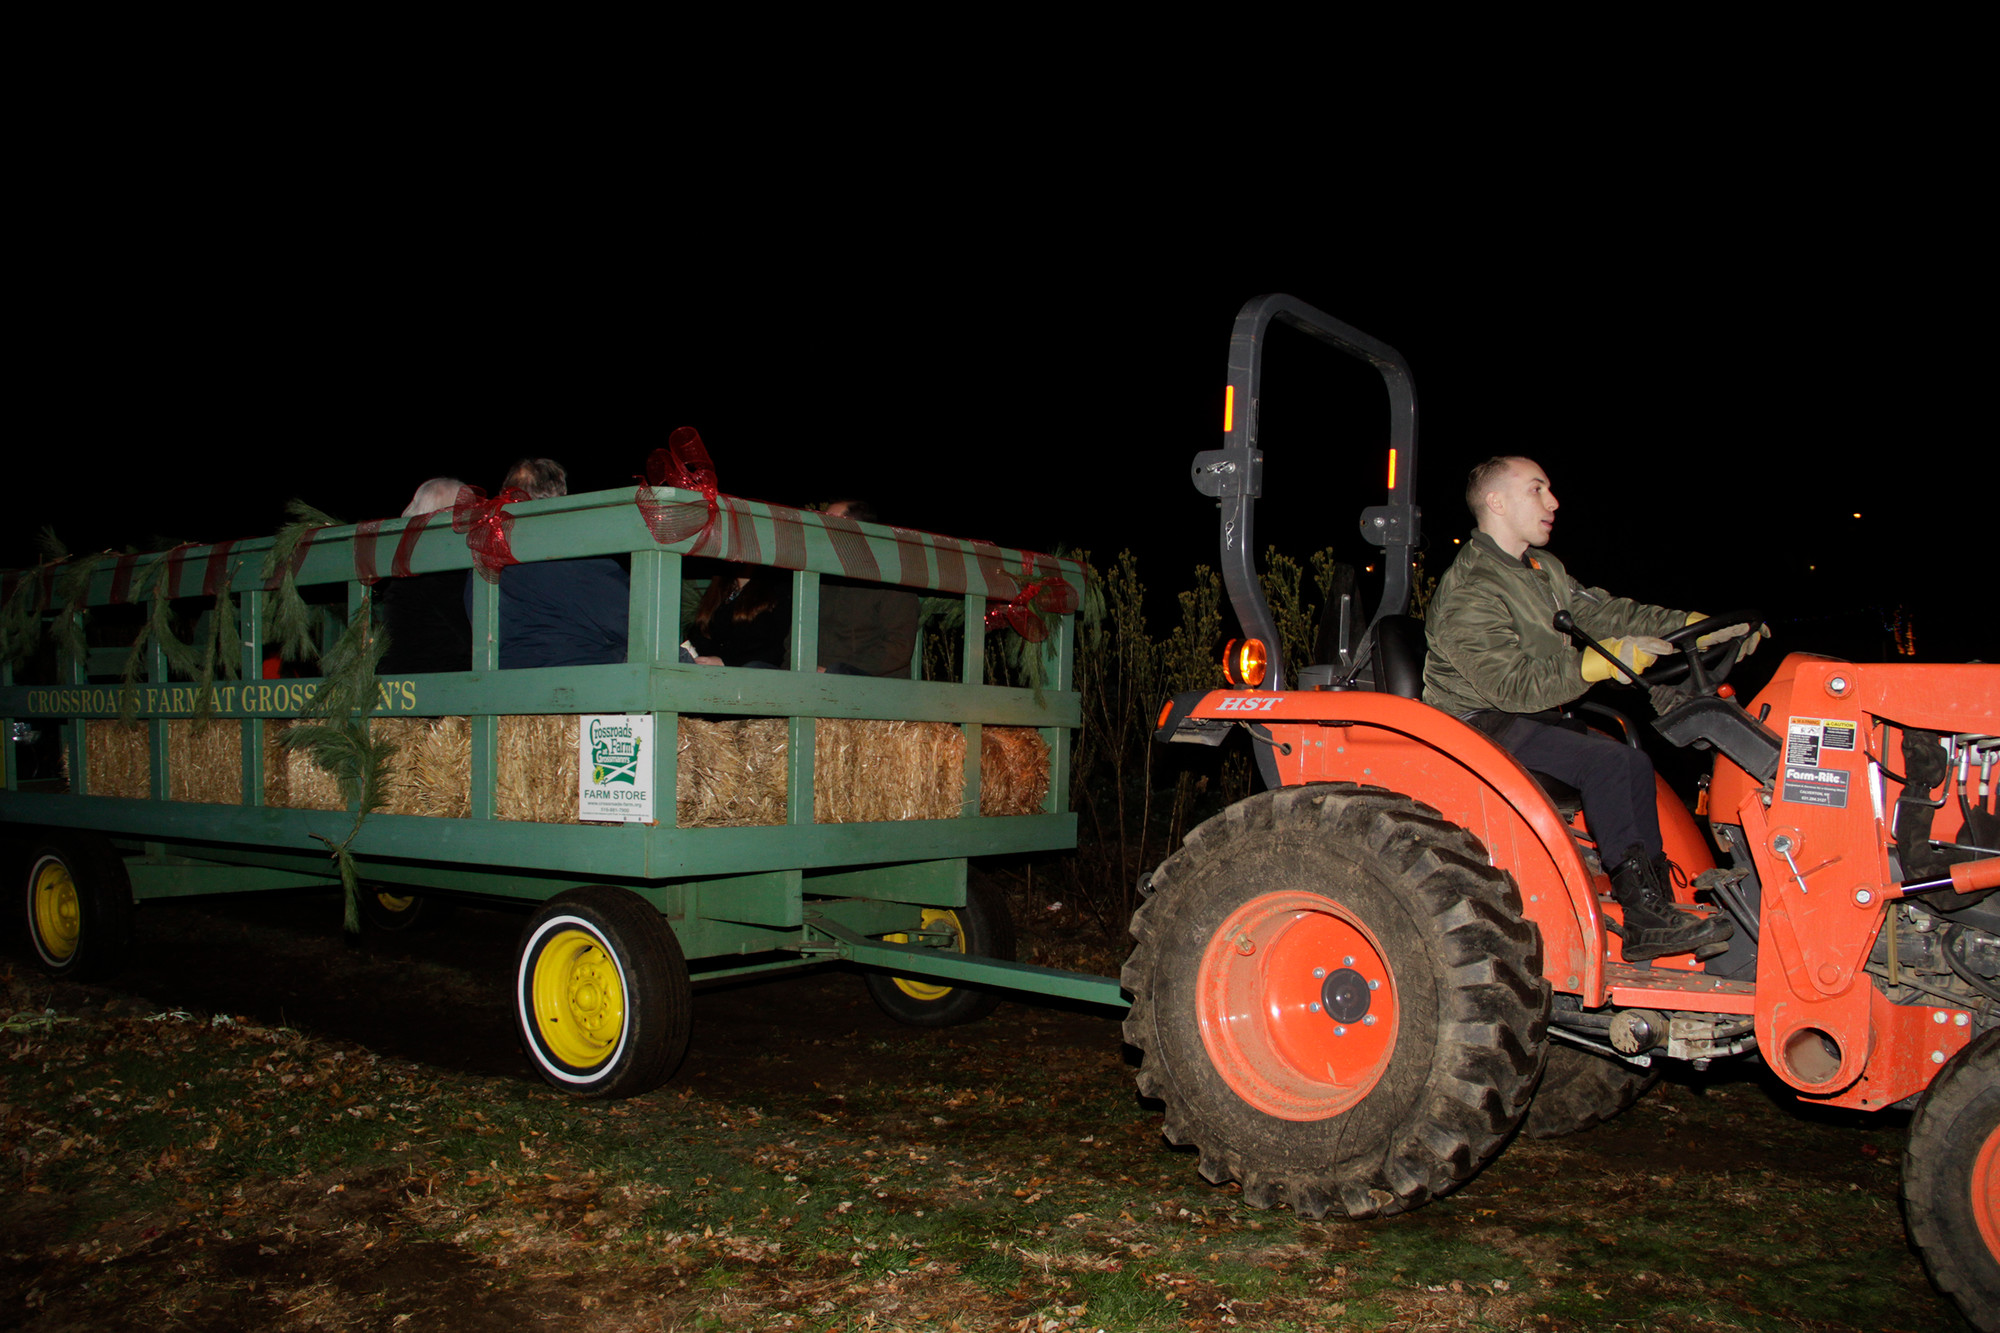 Michael Forlife volunteered his give a hayride to those who visited Crossroads Farm on the day of the lighting.